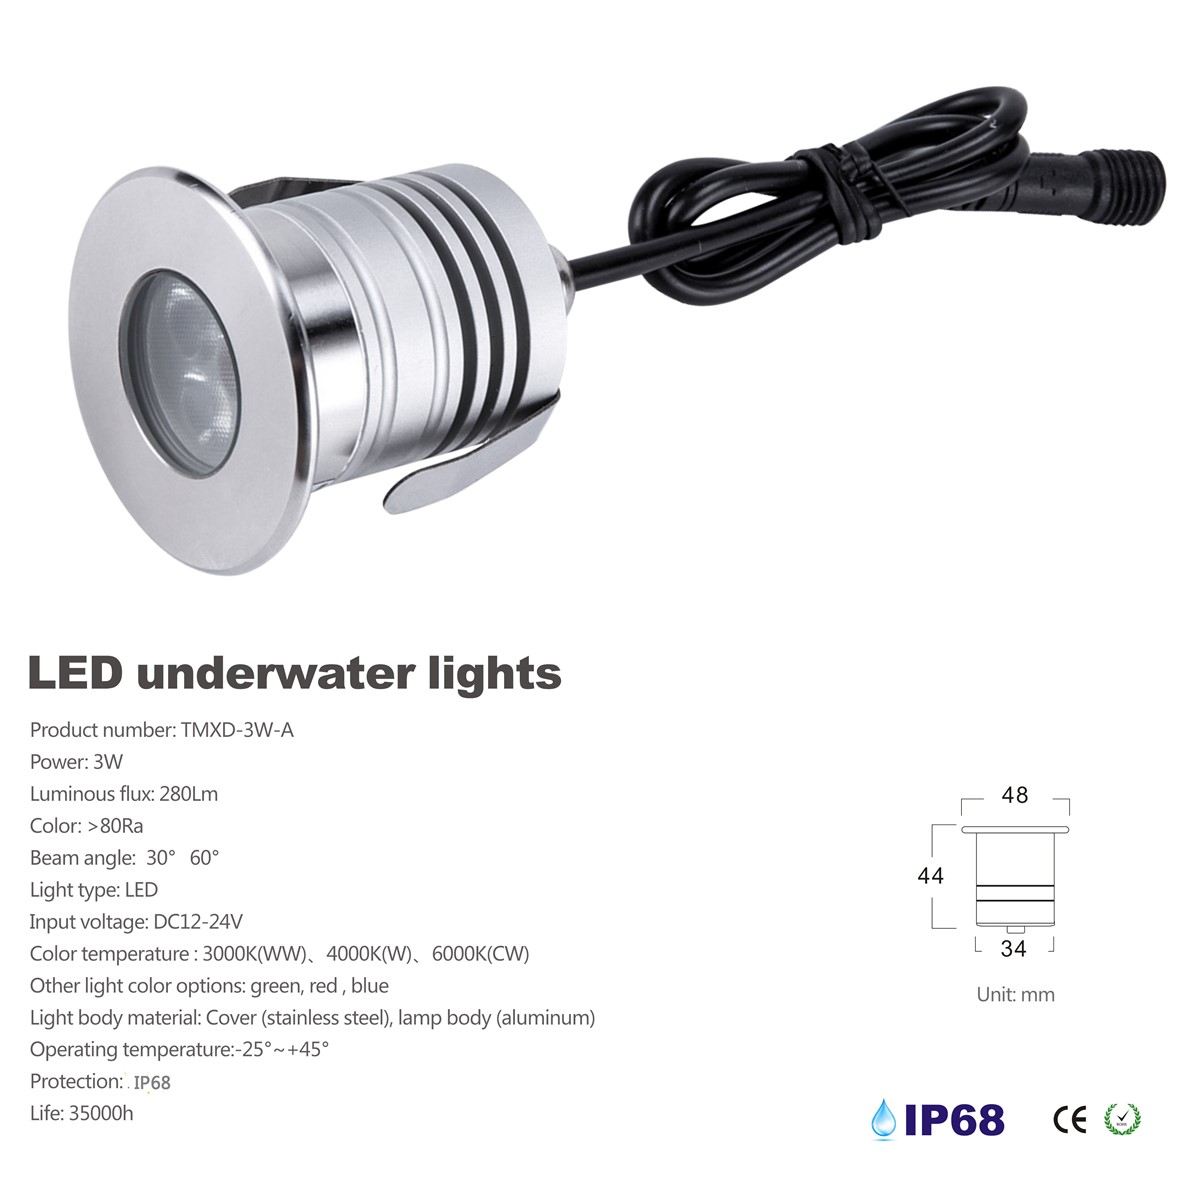 Stainless Steel Anti-Corrosion IP68 Waterproof 12V 24V Low Voltage Mini 3W LED Swimming Pool Fountain Landscaping Cree